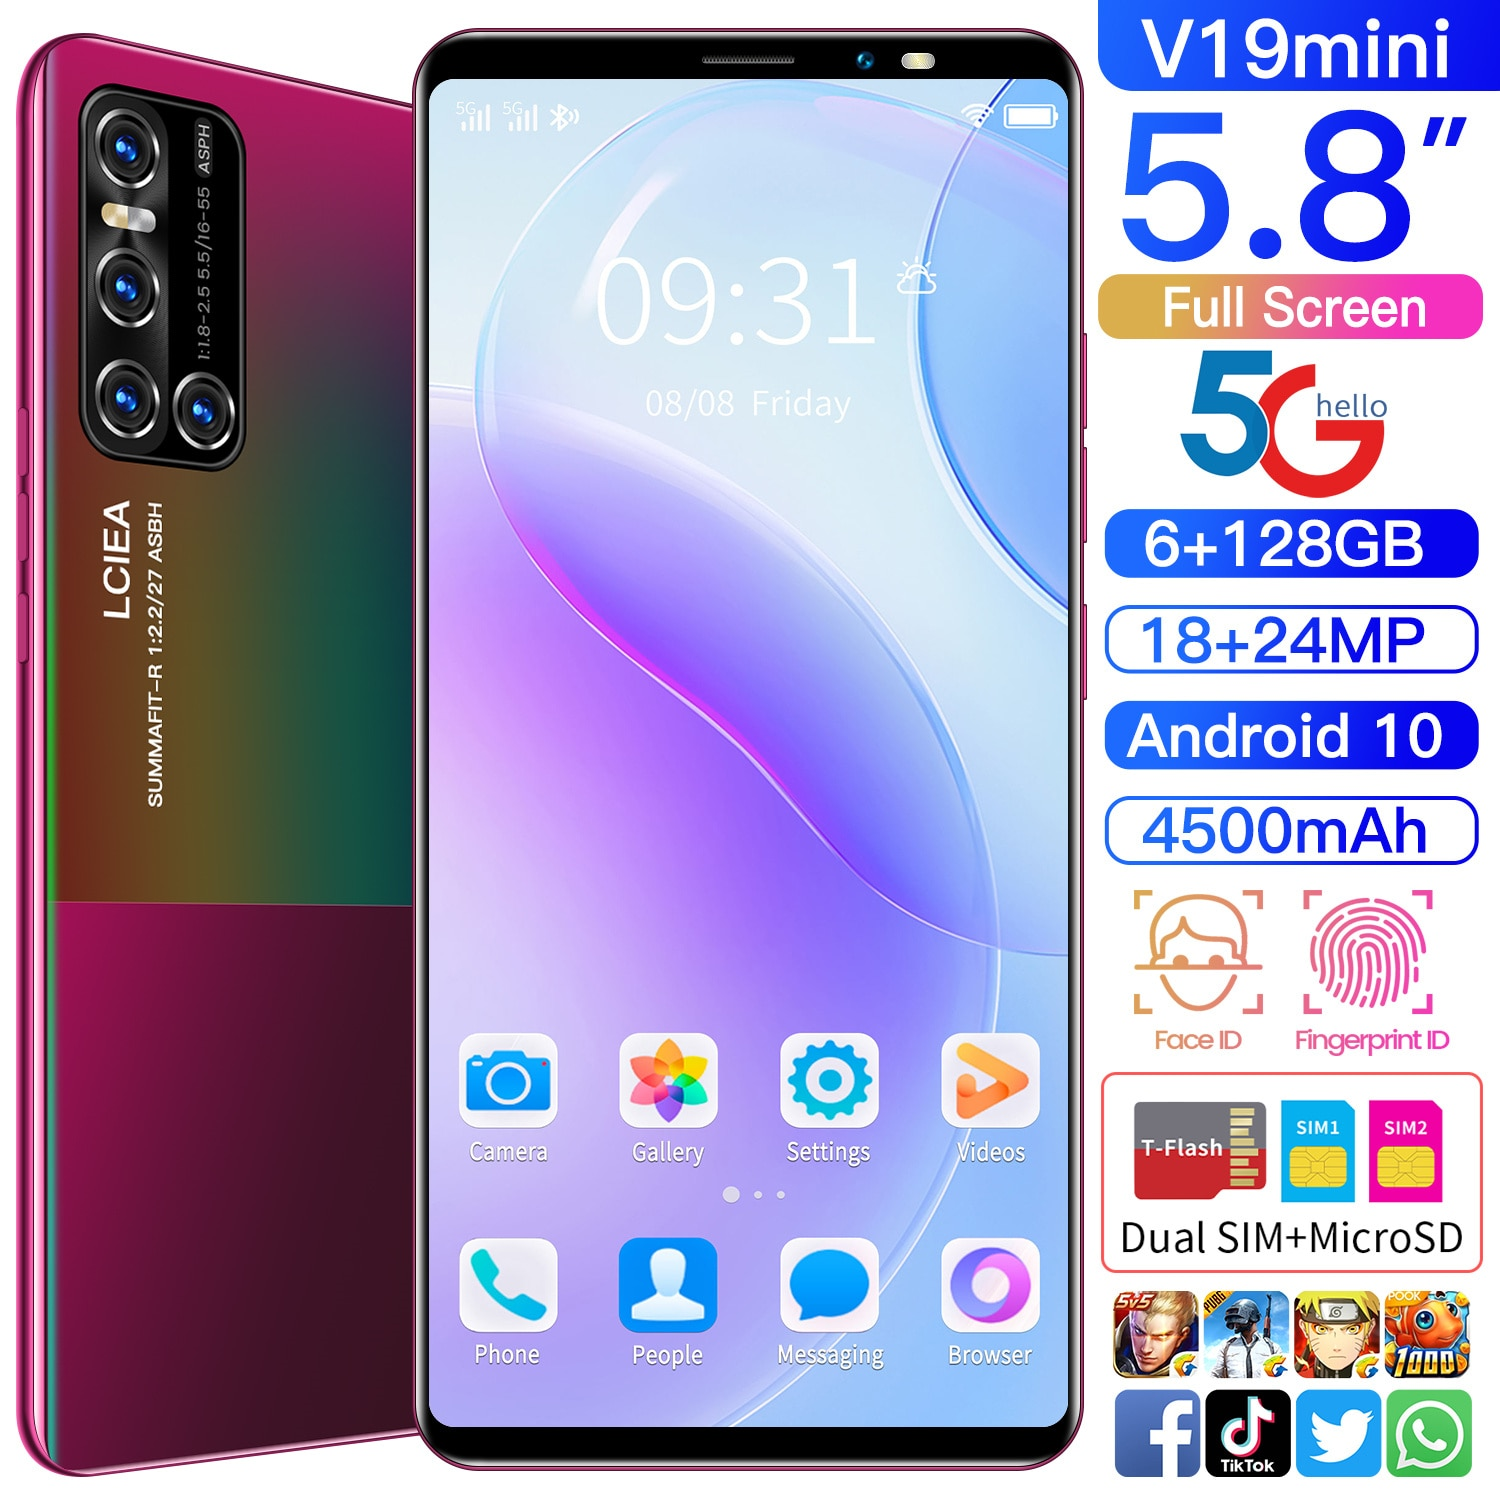 Global Version Galxy V19mini 5.8 Inch Smartphone 4500mAh 6GB RAM 128GB ROM Dual SIM+Micro SD 5G  Fin